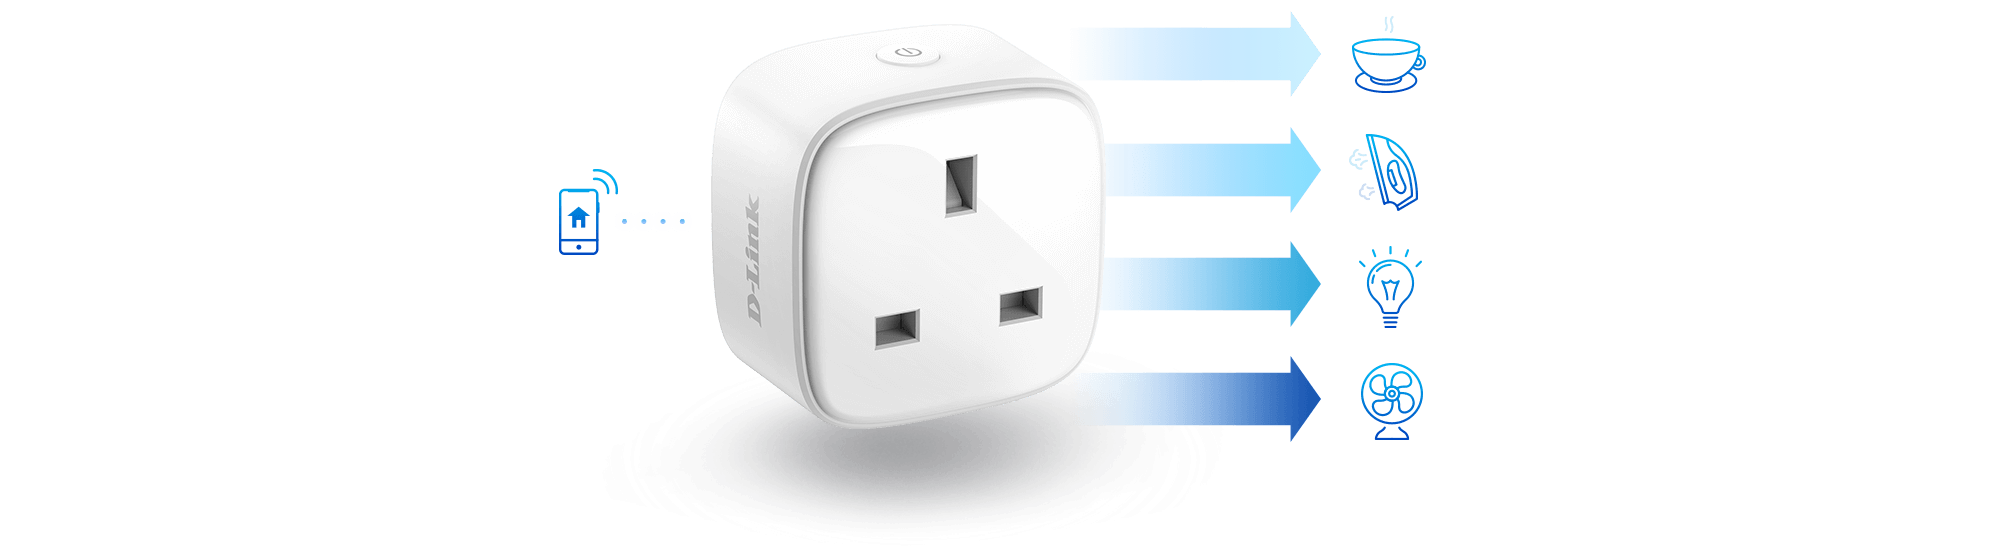 Mini Wi-Fi Smart Plug powering a range of example devices using a phone